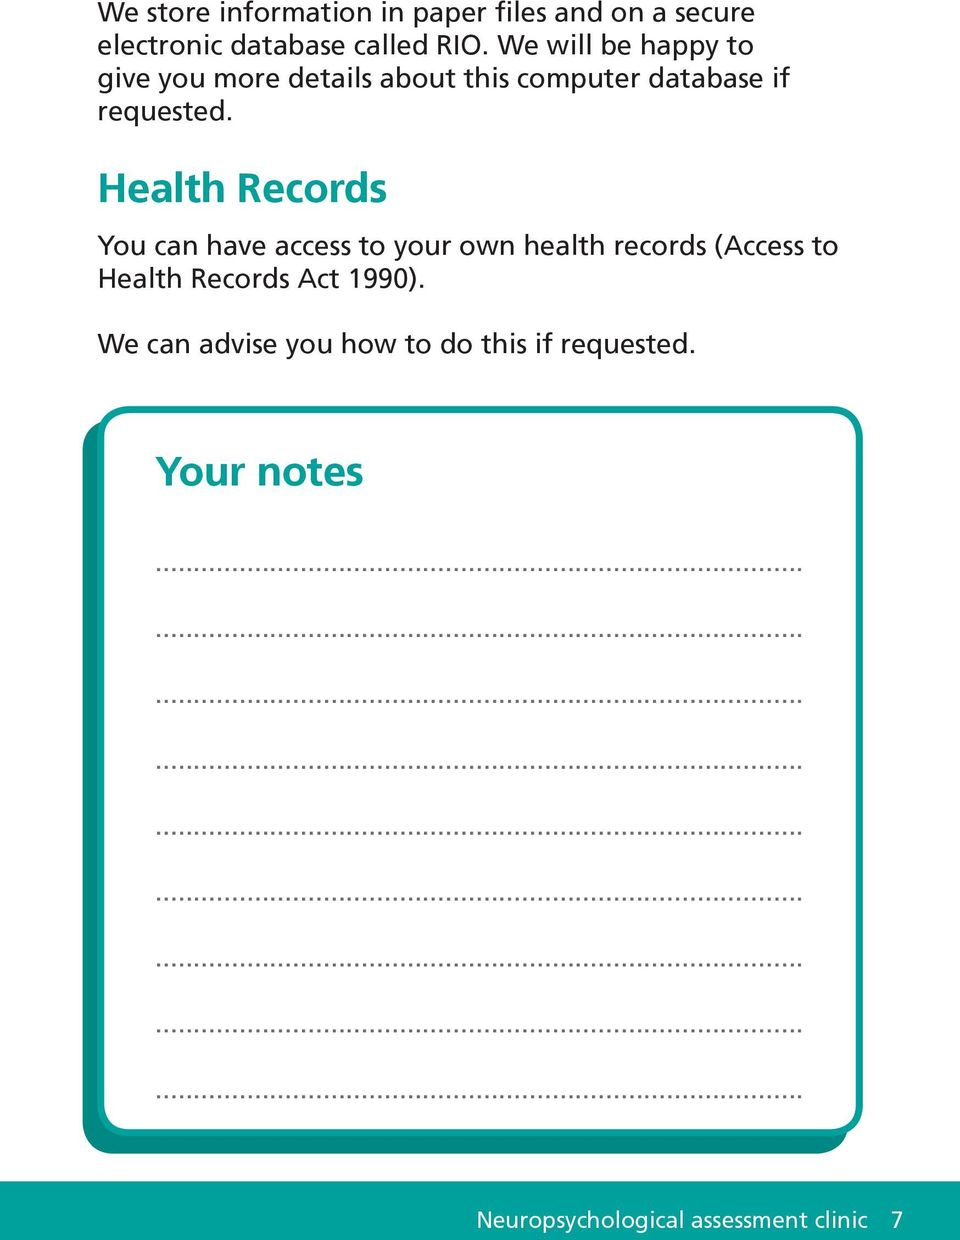 Health Records You can have access to your own health records (Access to Health Records